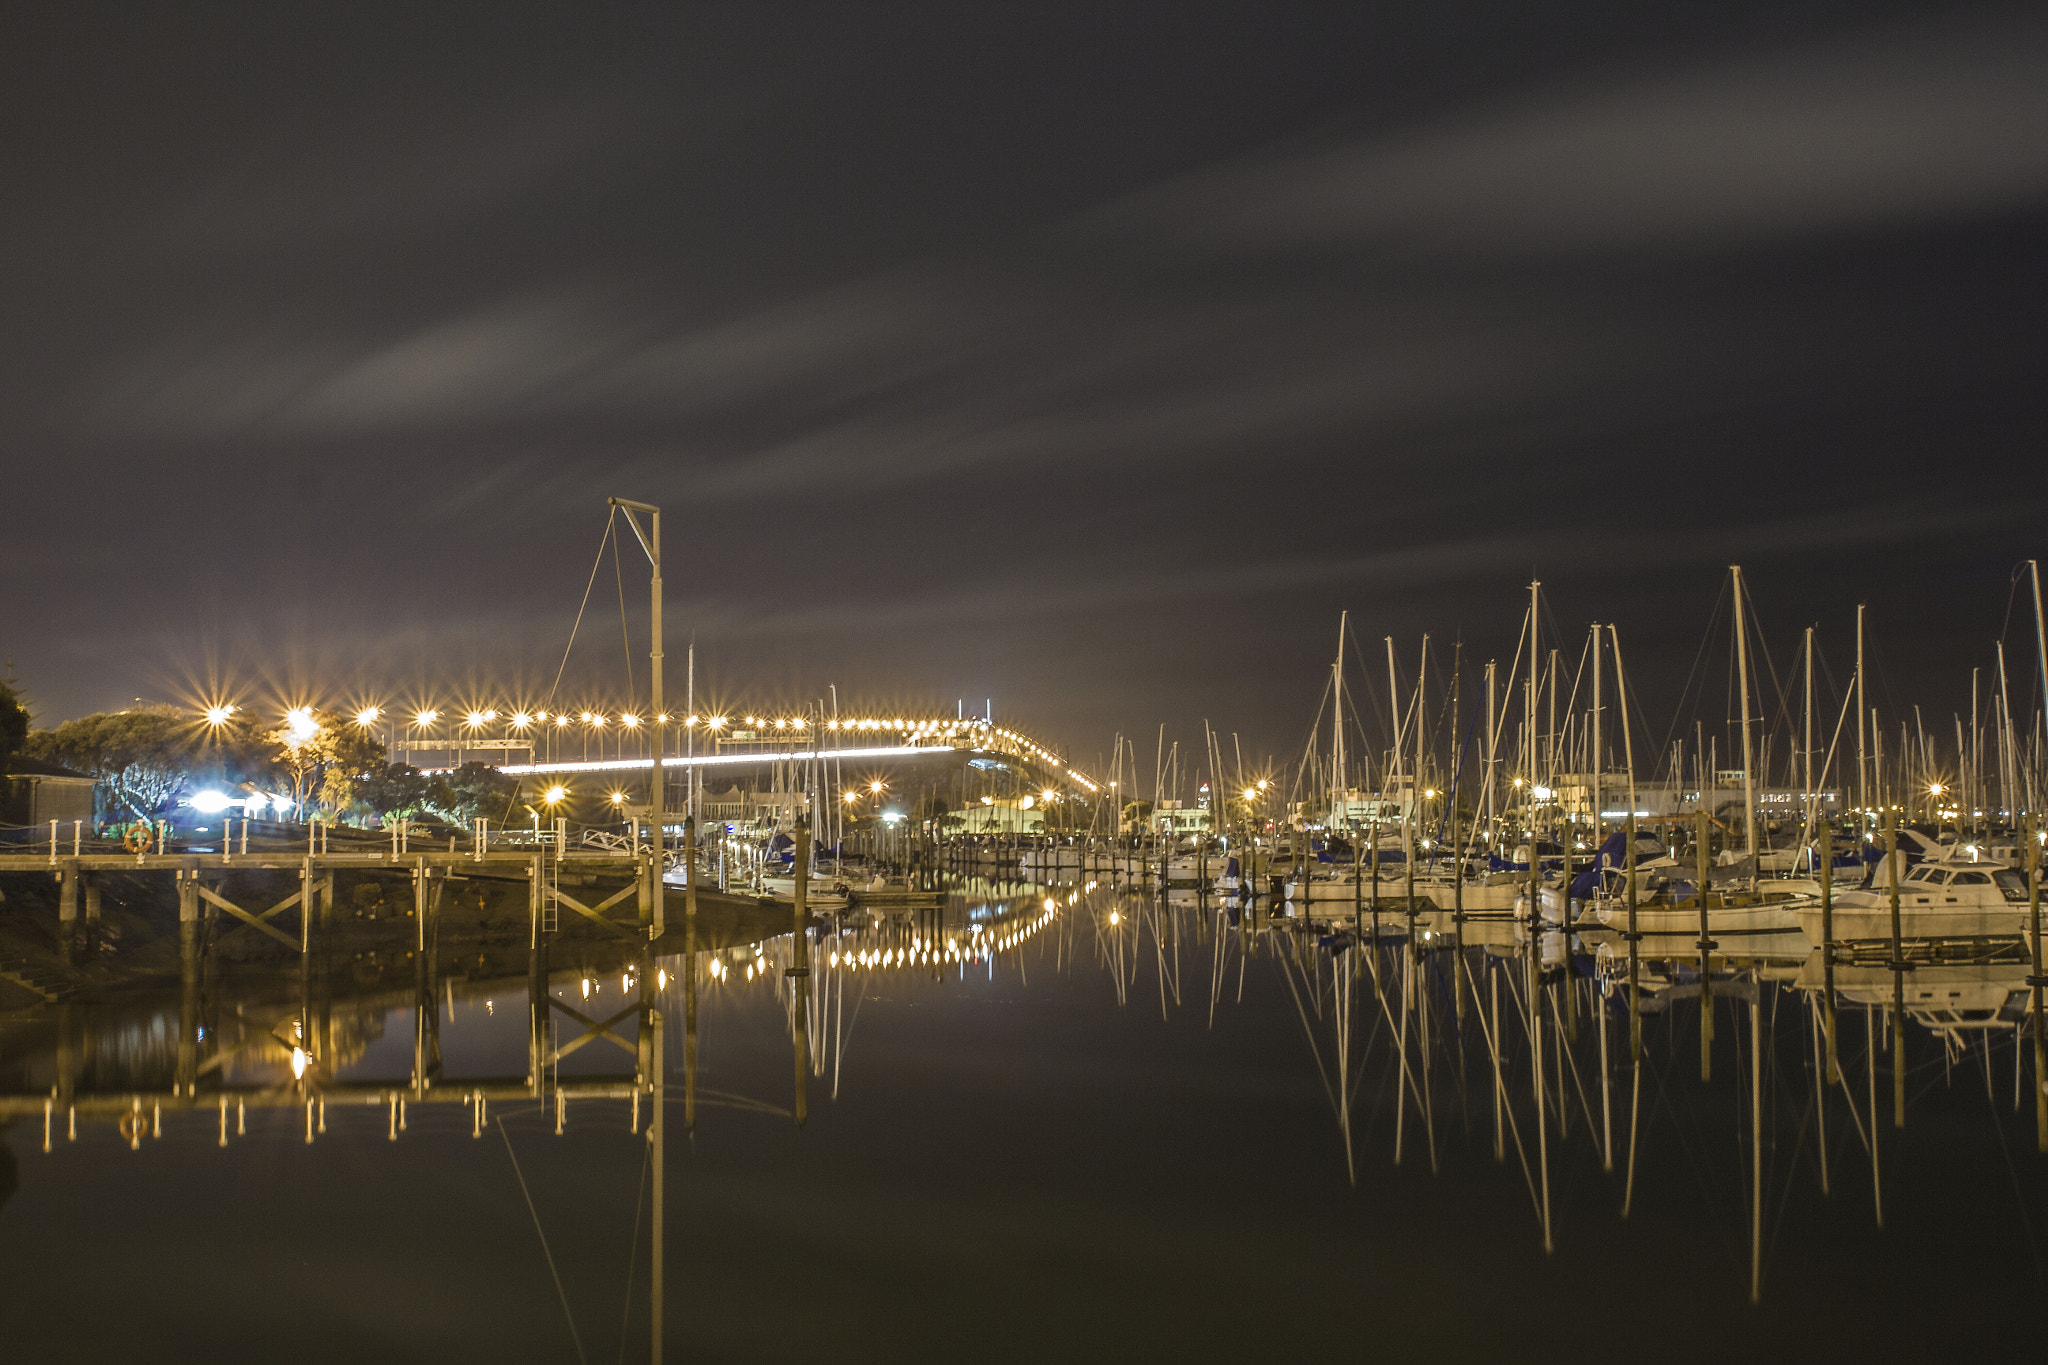 Photograph Westhaven Marina by Bong Andres on 500px